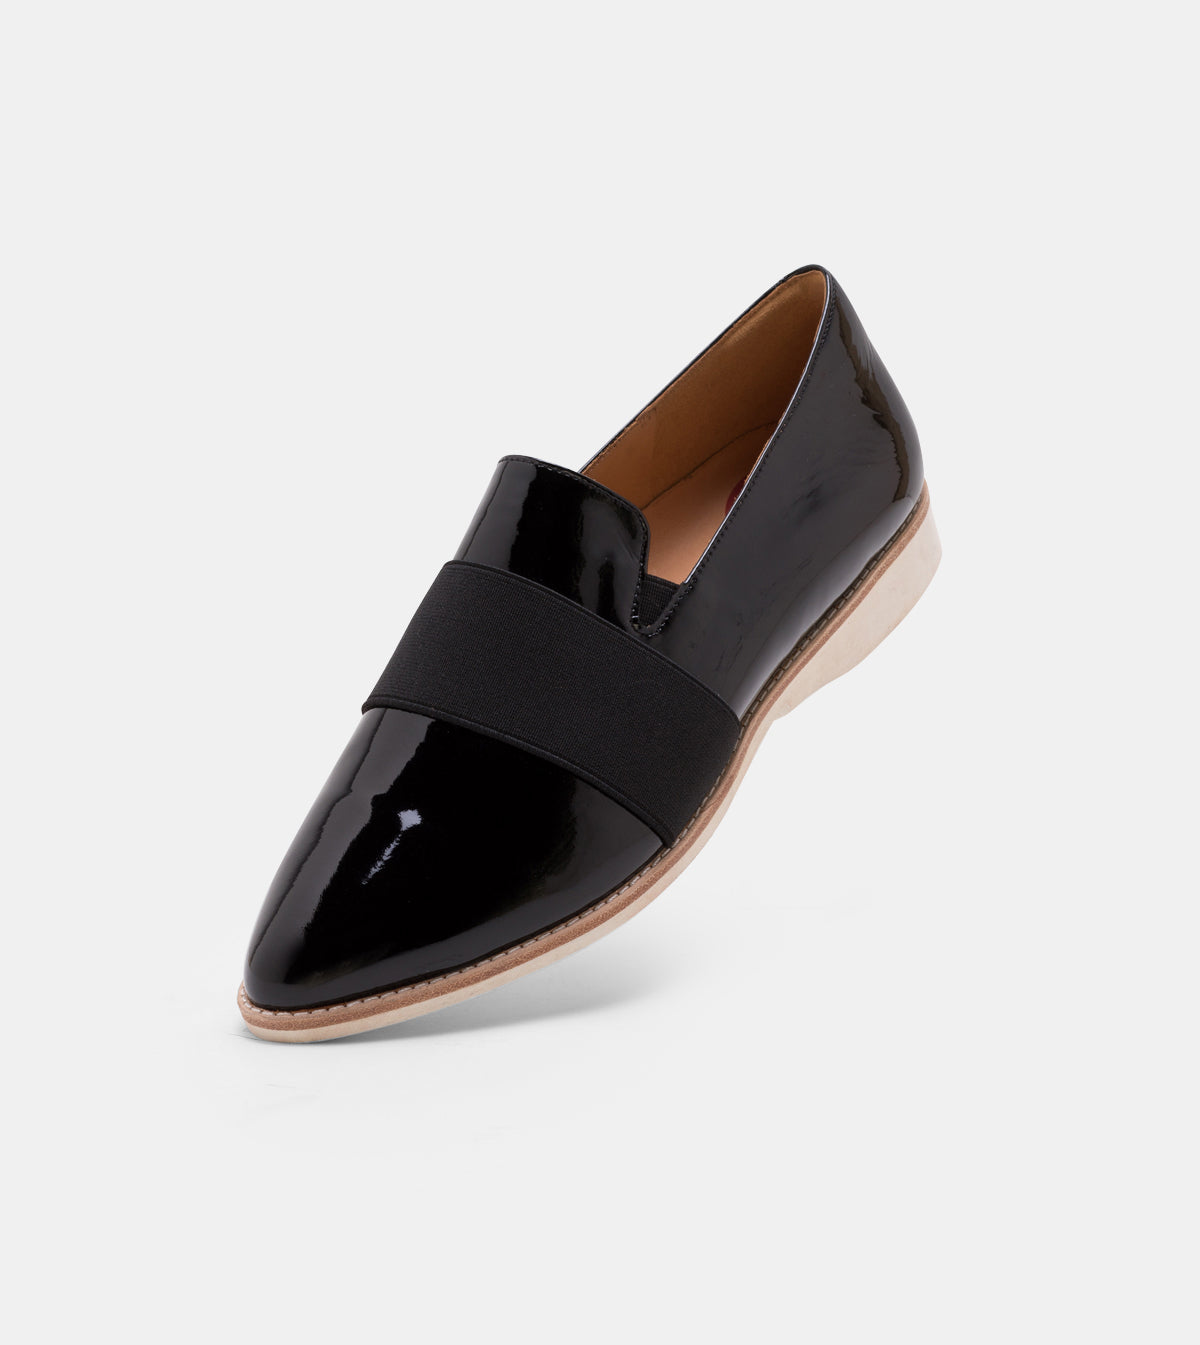 Madison Albert Strap Black Patent Crinkle/Black